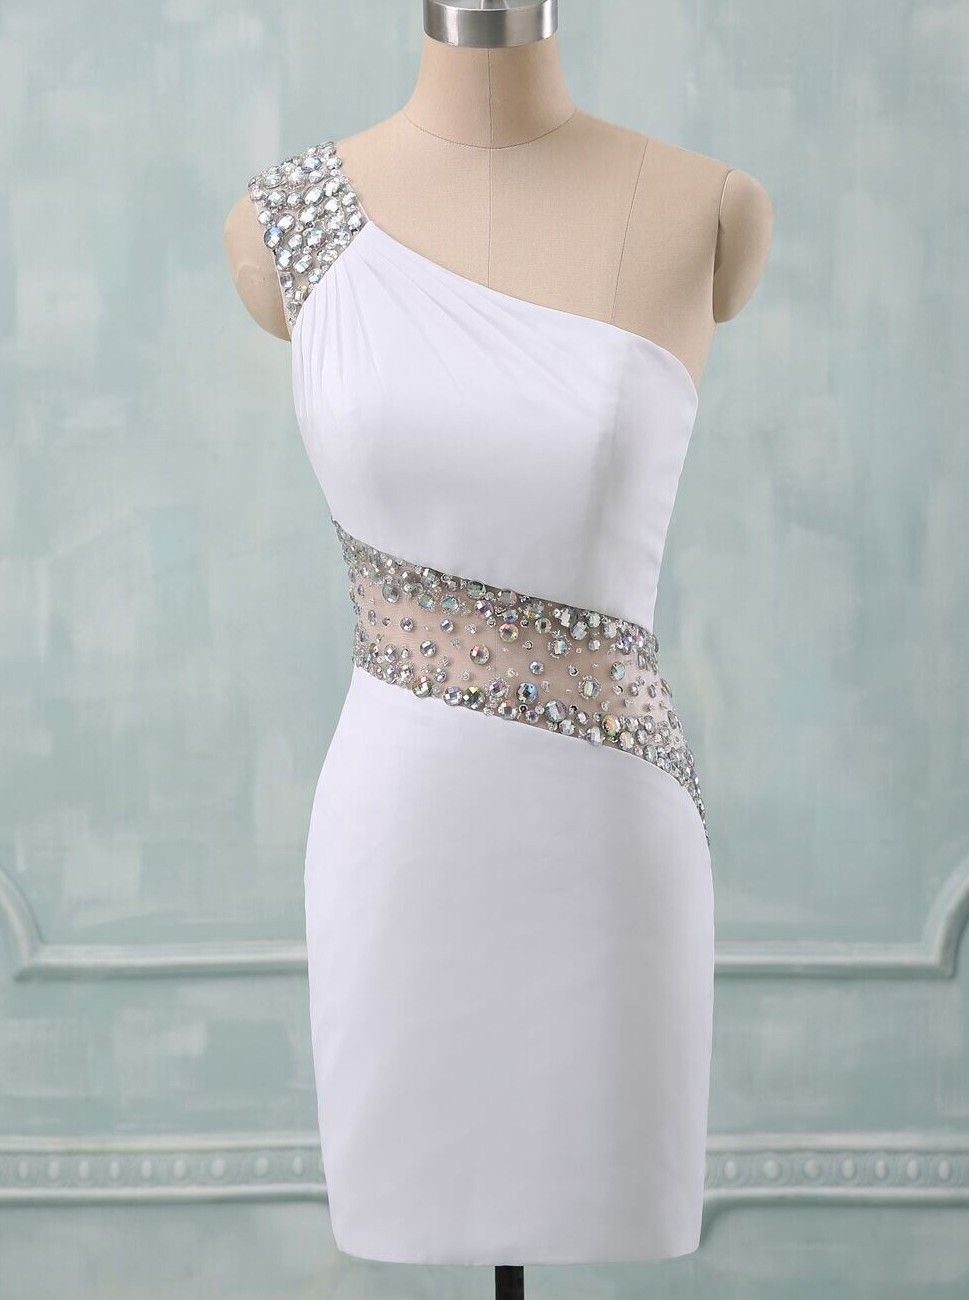 Sheath/Column One-Shoulder Short Spandex Beaded White Backless Party ...